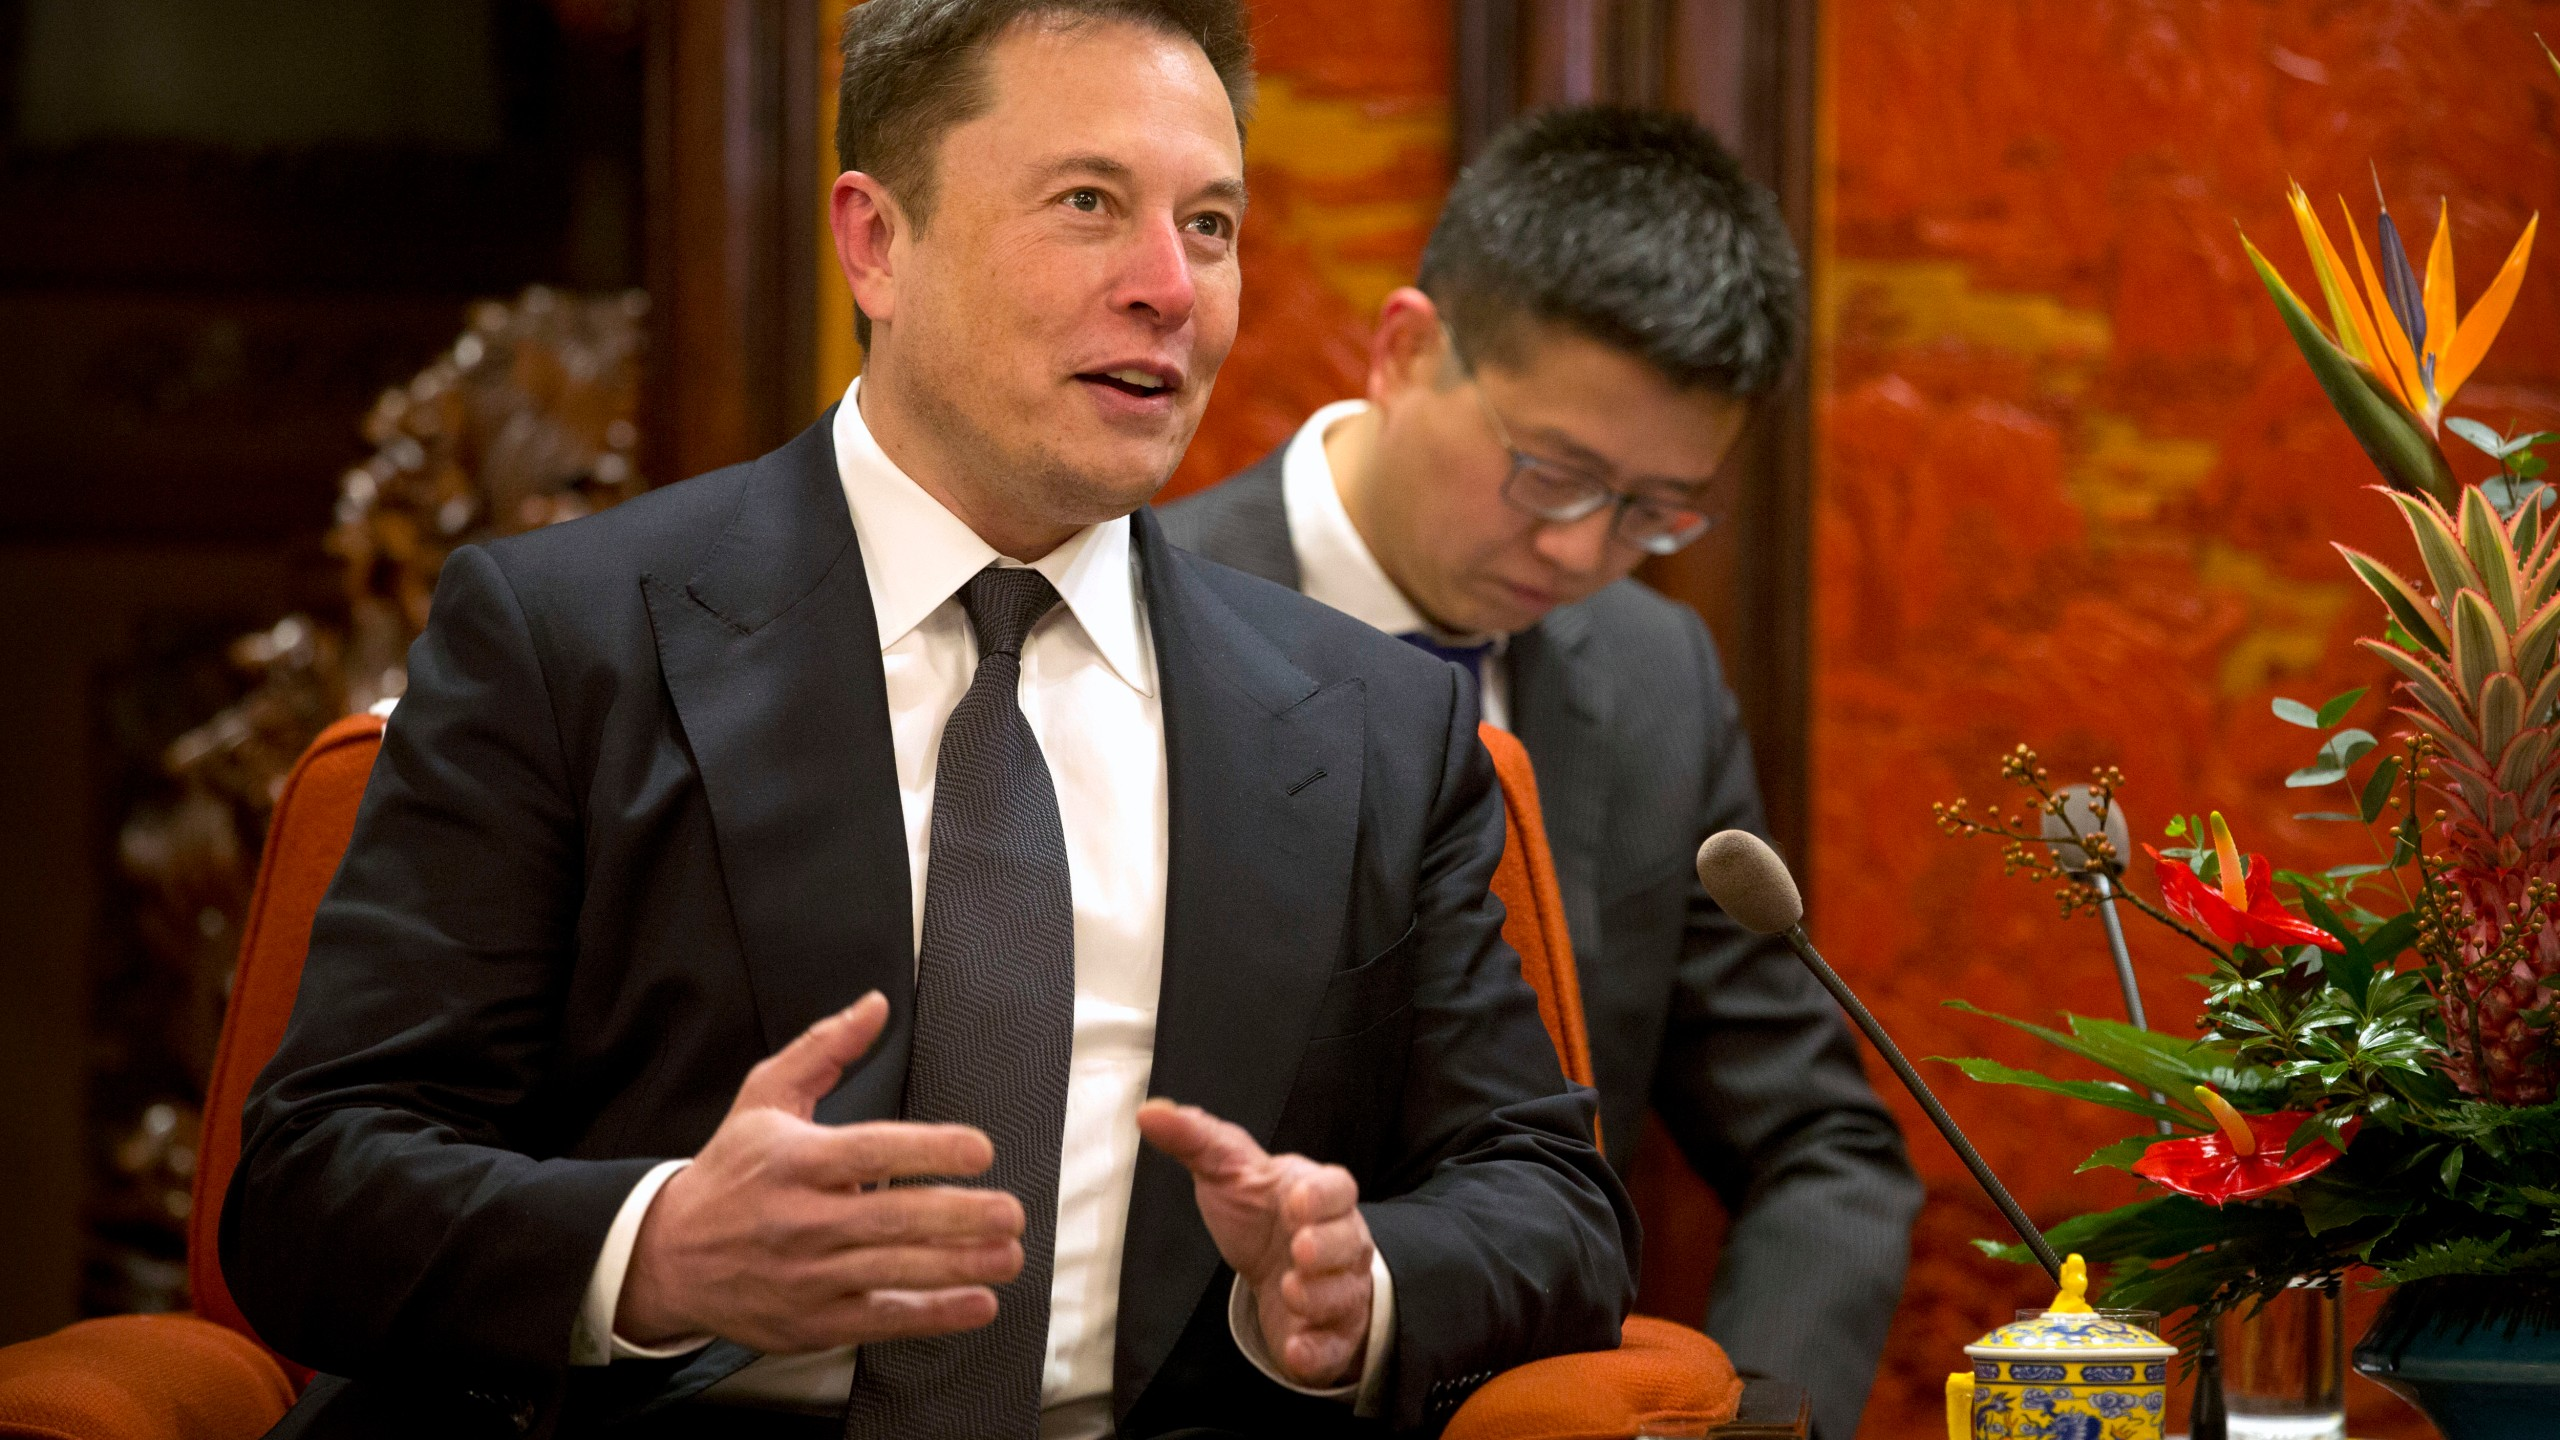 Tesla CEO Elon Musk speaks during a meeting with Chinese Premier Li Keqiang (not pictured) at the Zhongnanhai leadership compound in Beijing on Jan. 9, 2019. (Credit: Mark Schiefelbein / AFP / Getty Images)